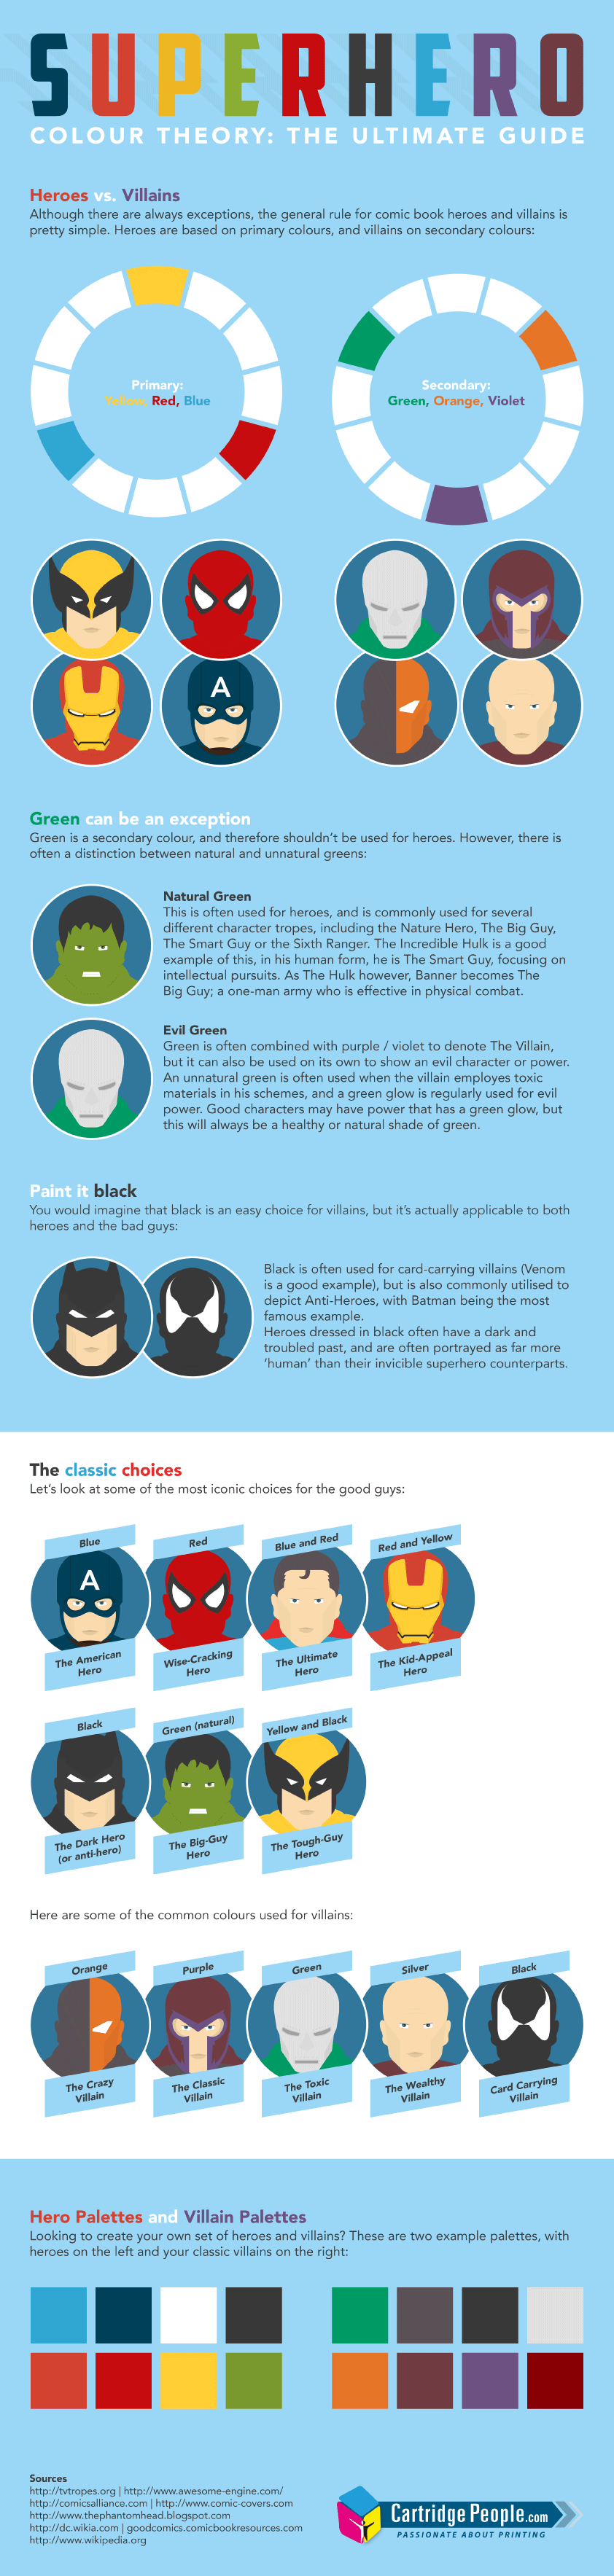 Superhero Colour Theory